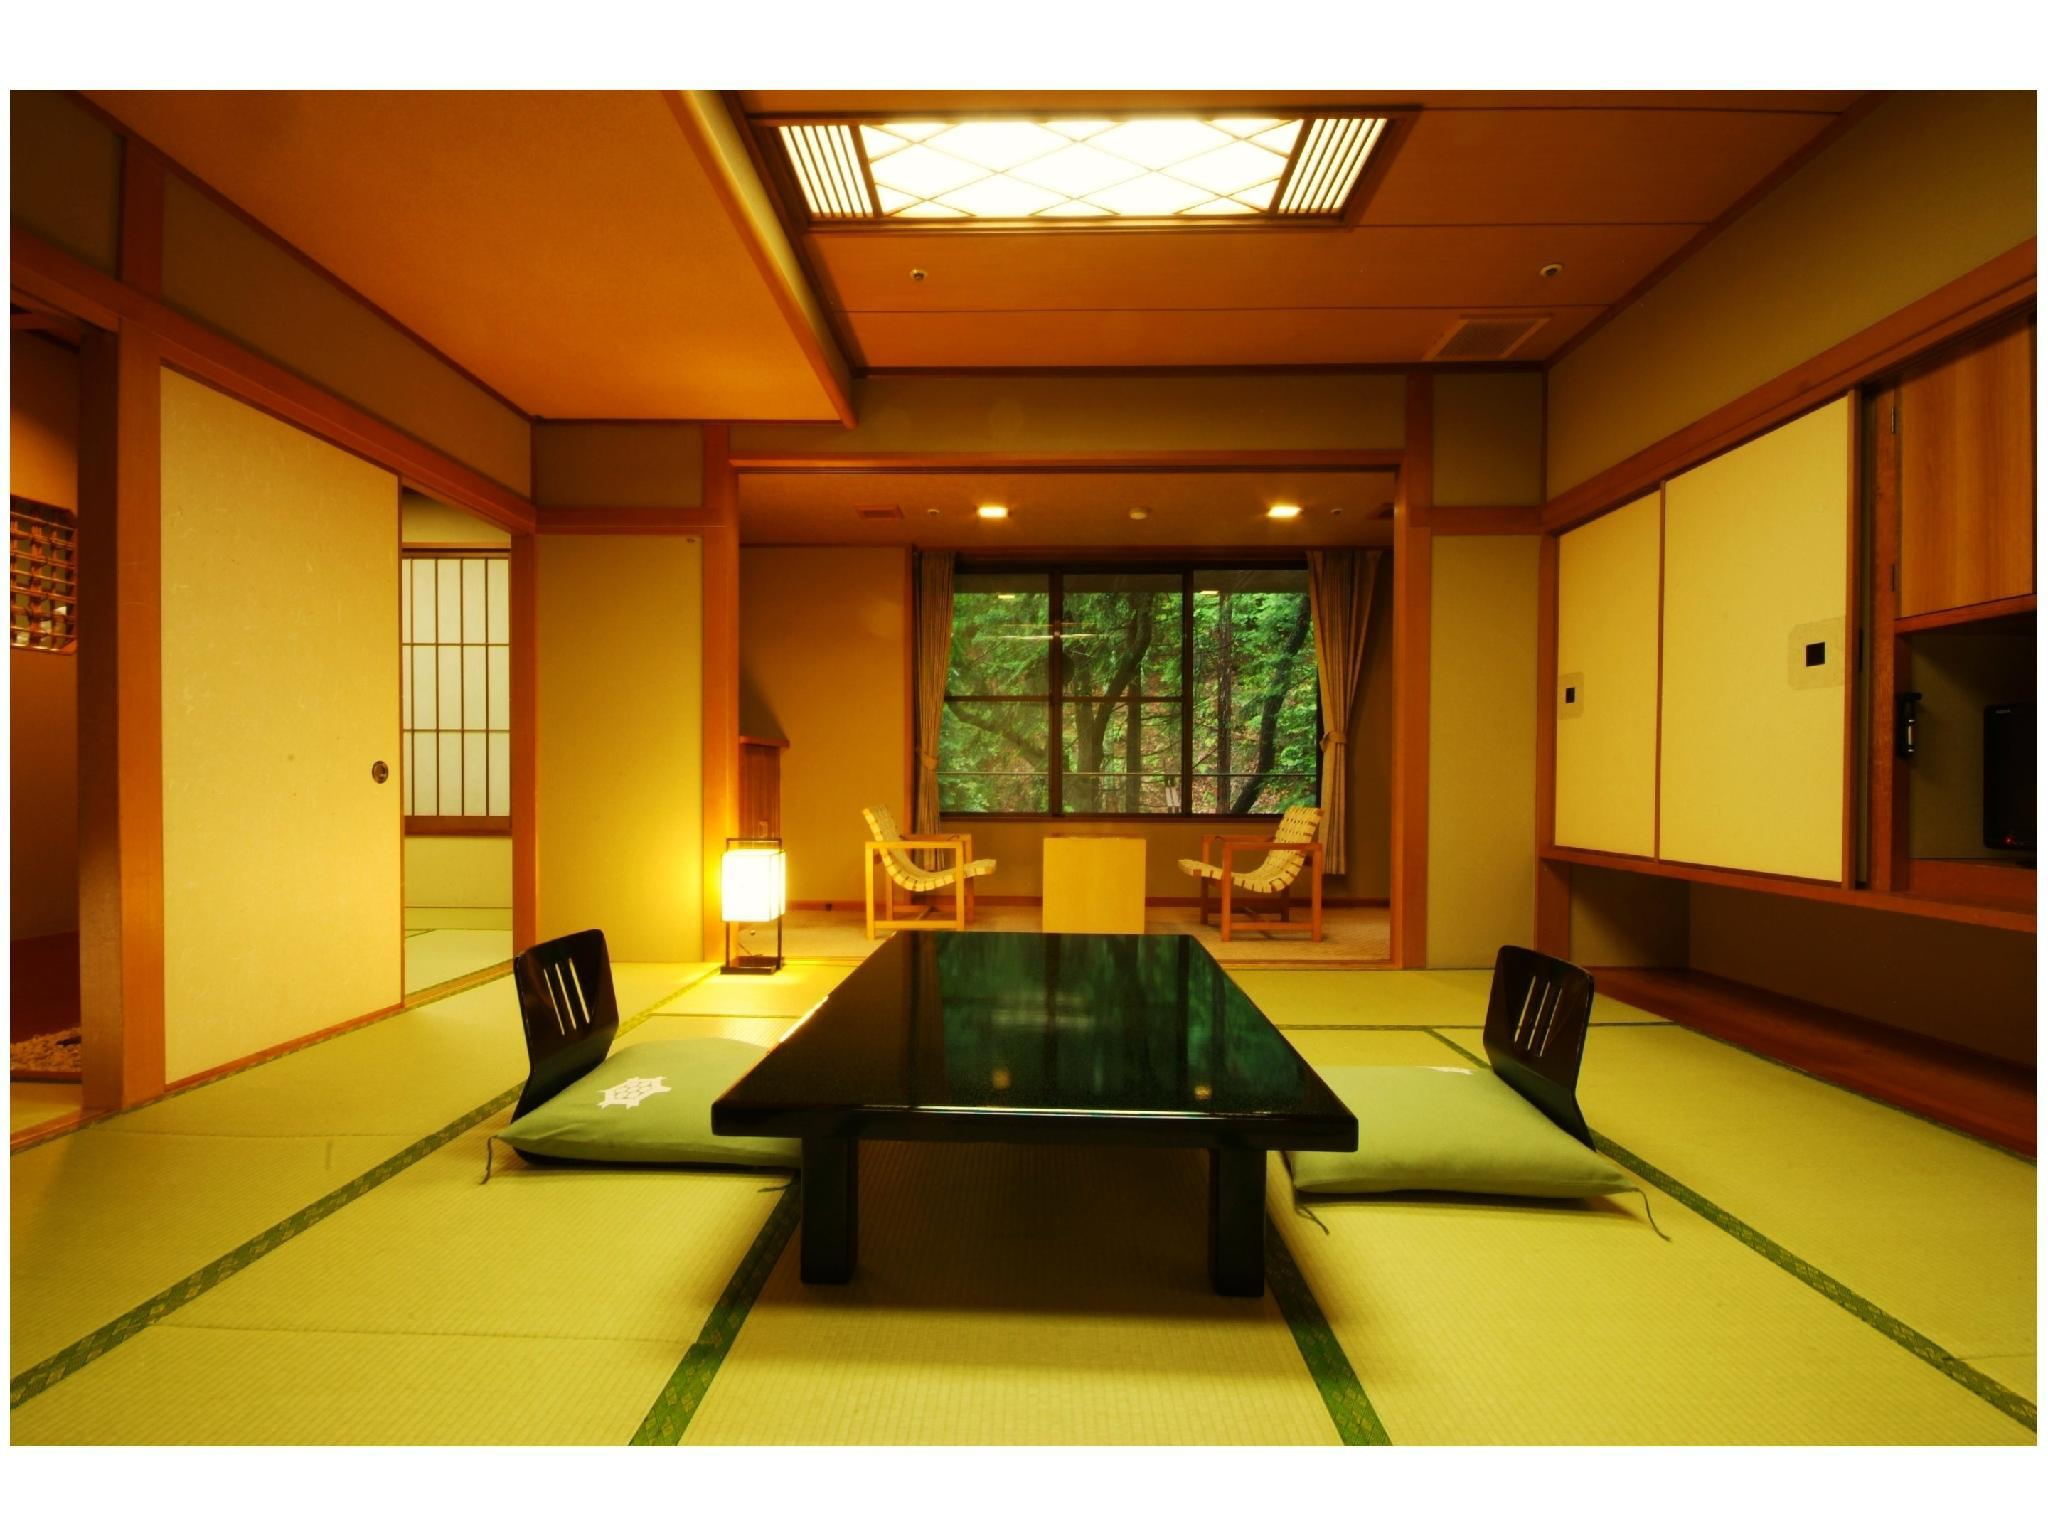 Deluxe Japanese-style Room (2 Room Type)